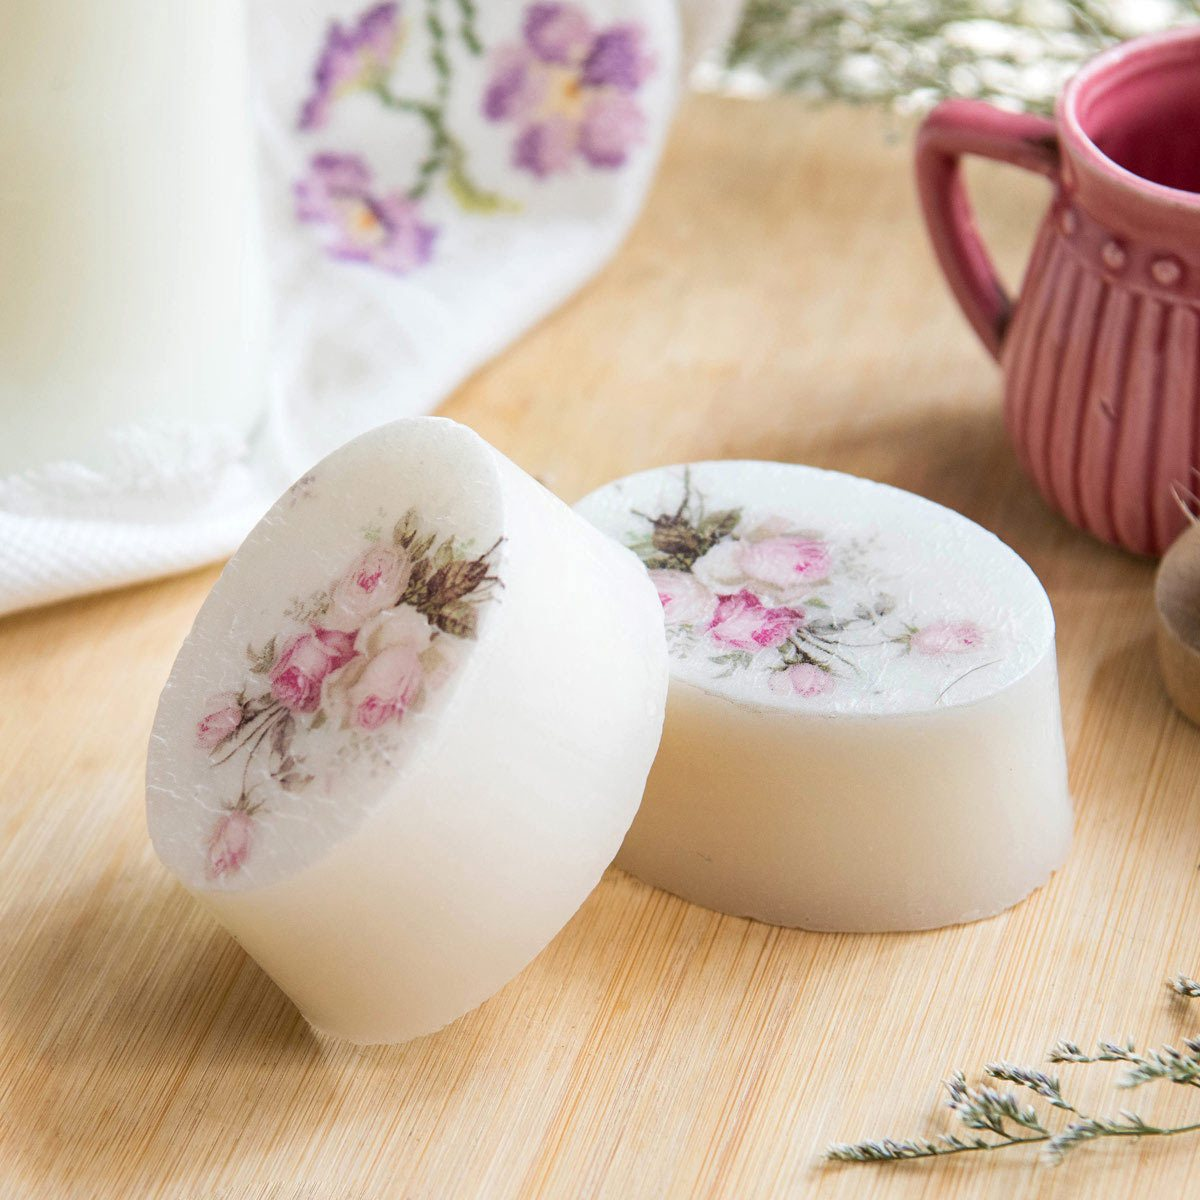 Goat Milk Soap With Vintage Floral Motifs